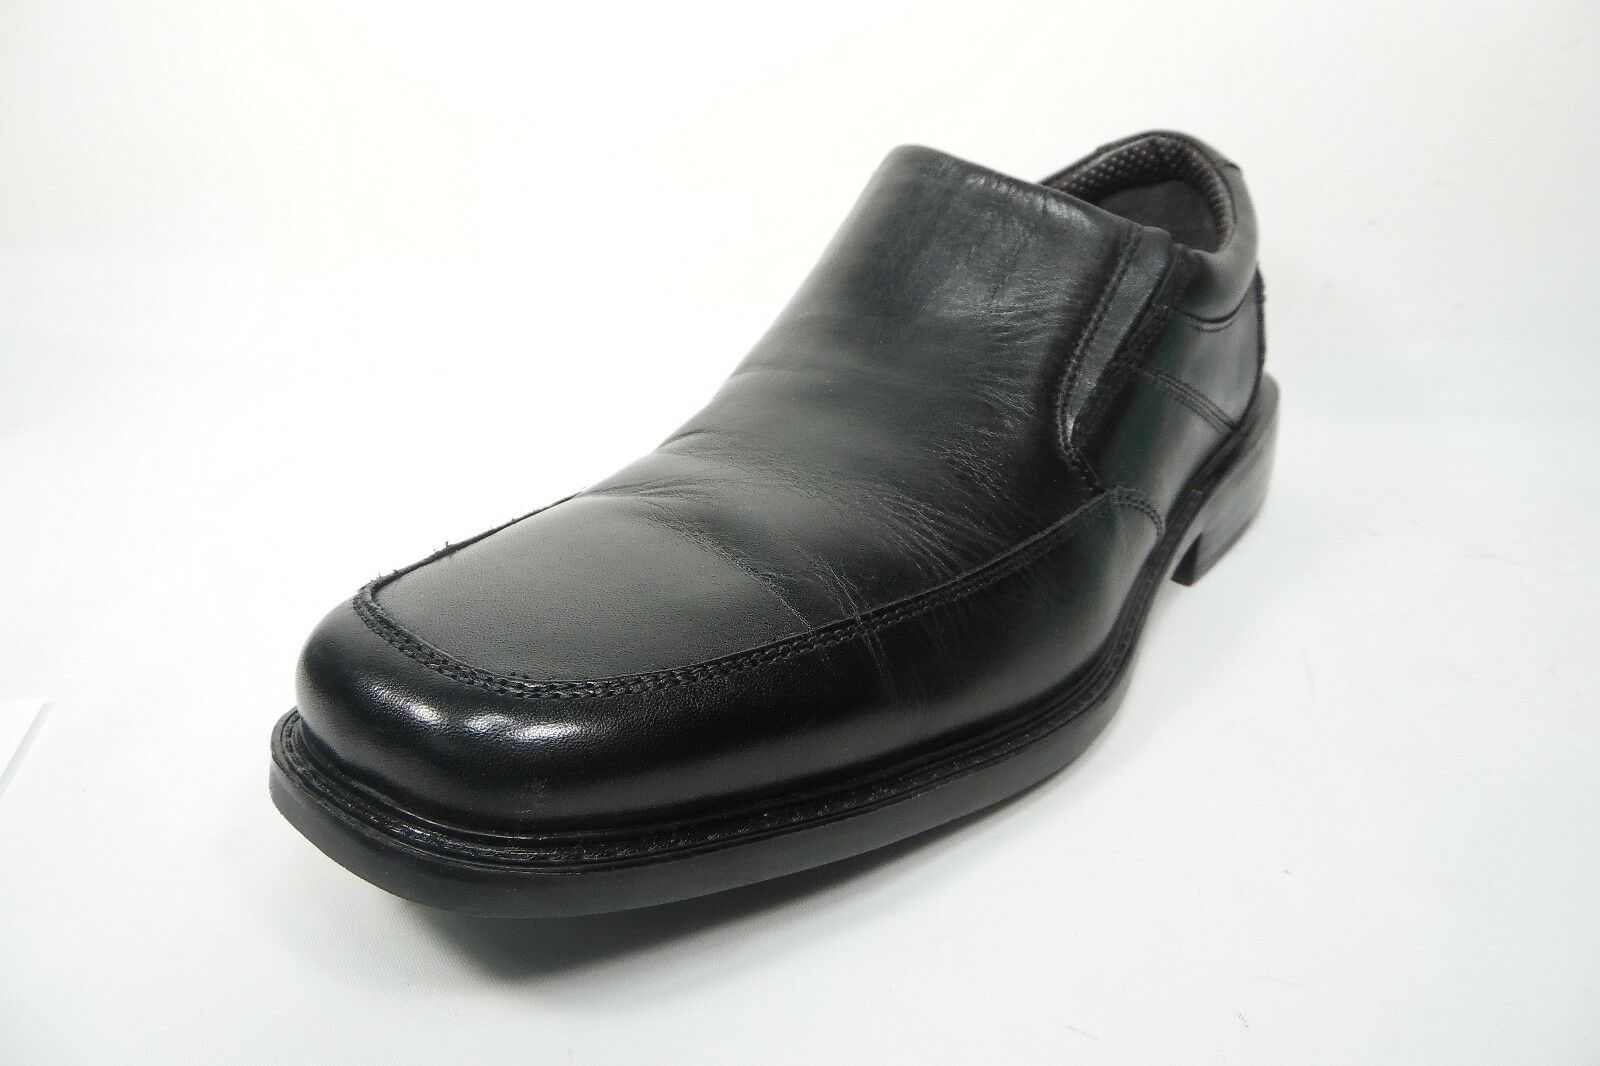 Dockers Men's Park Slip-On Loafer Black Size 13M